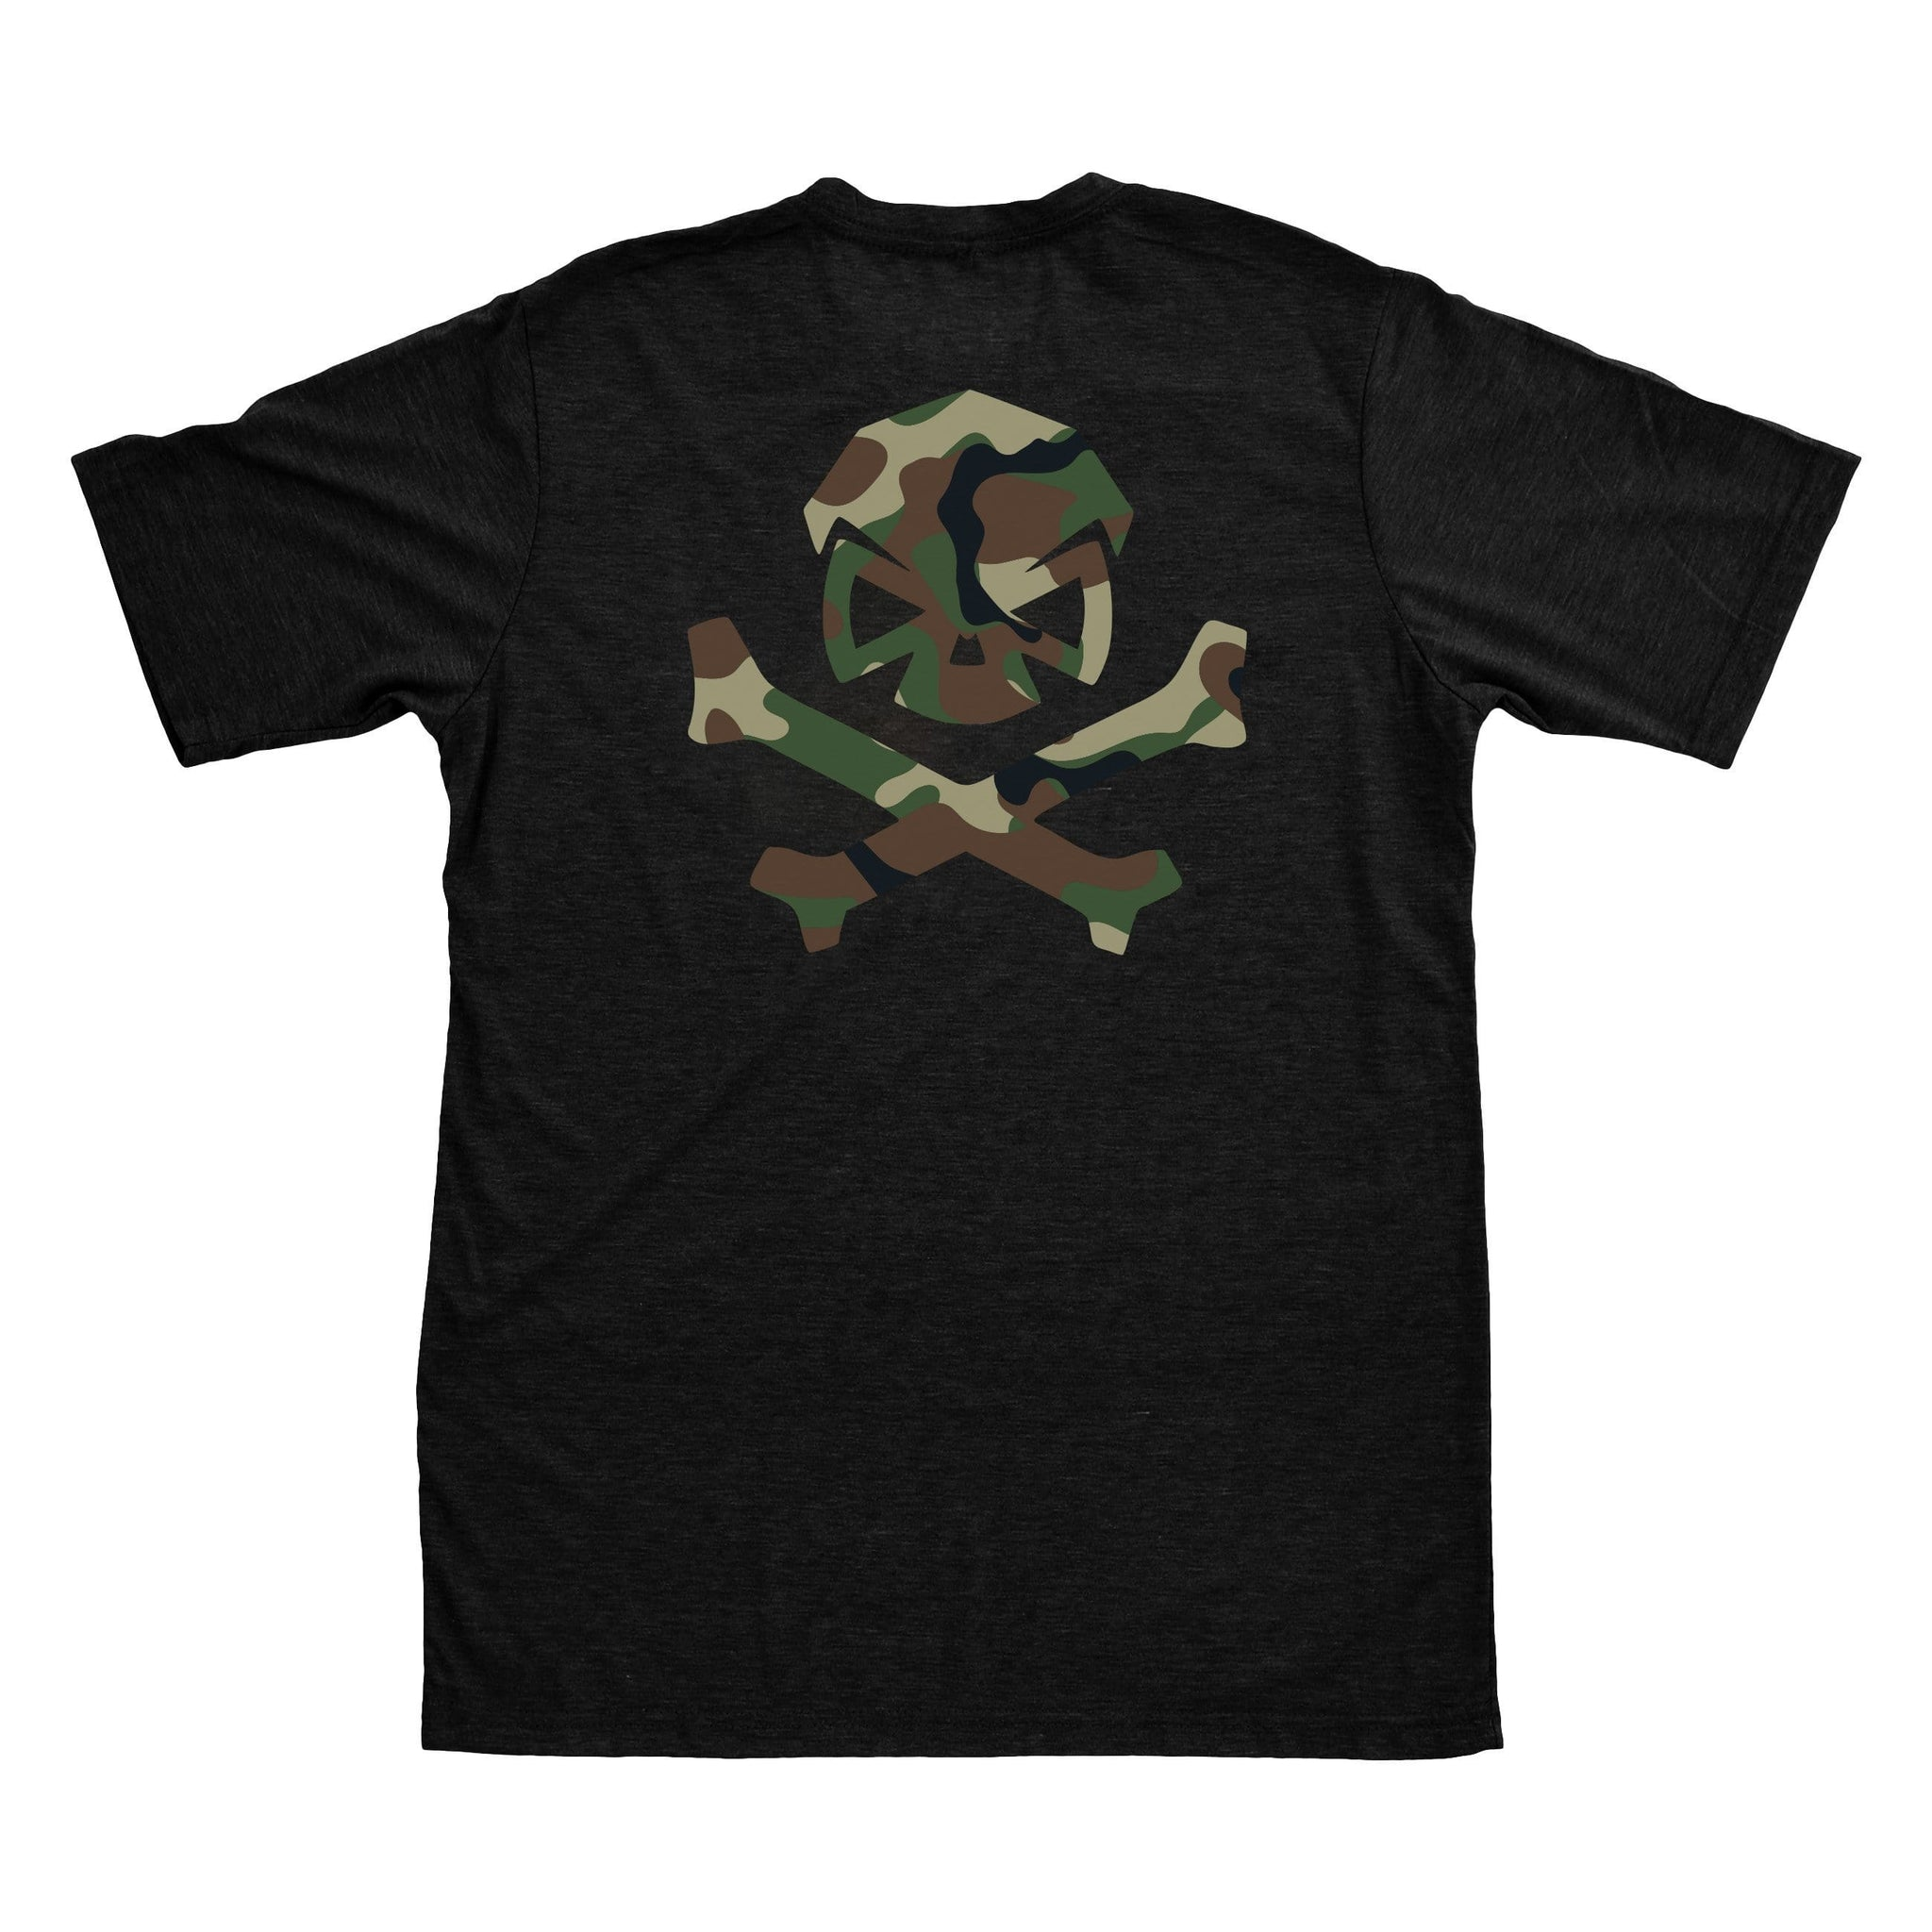 Woodland Camo Logo Tee - Black/Green_Woodland - T-Shirts - Pipe Hitters Union